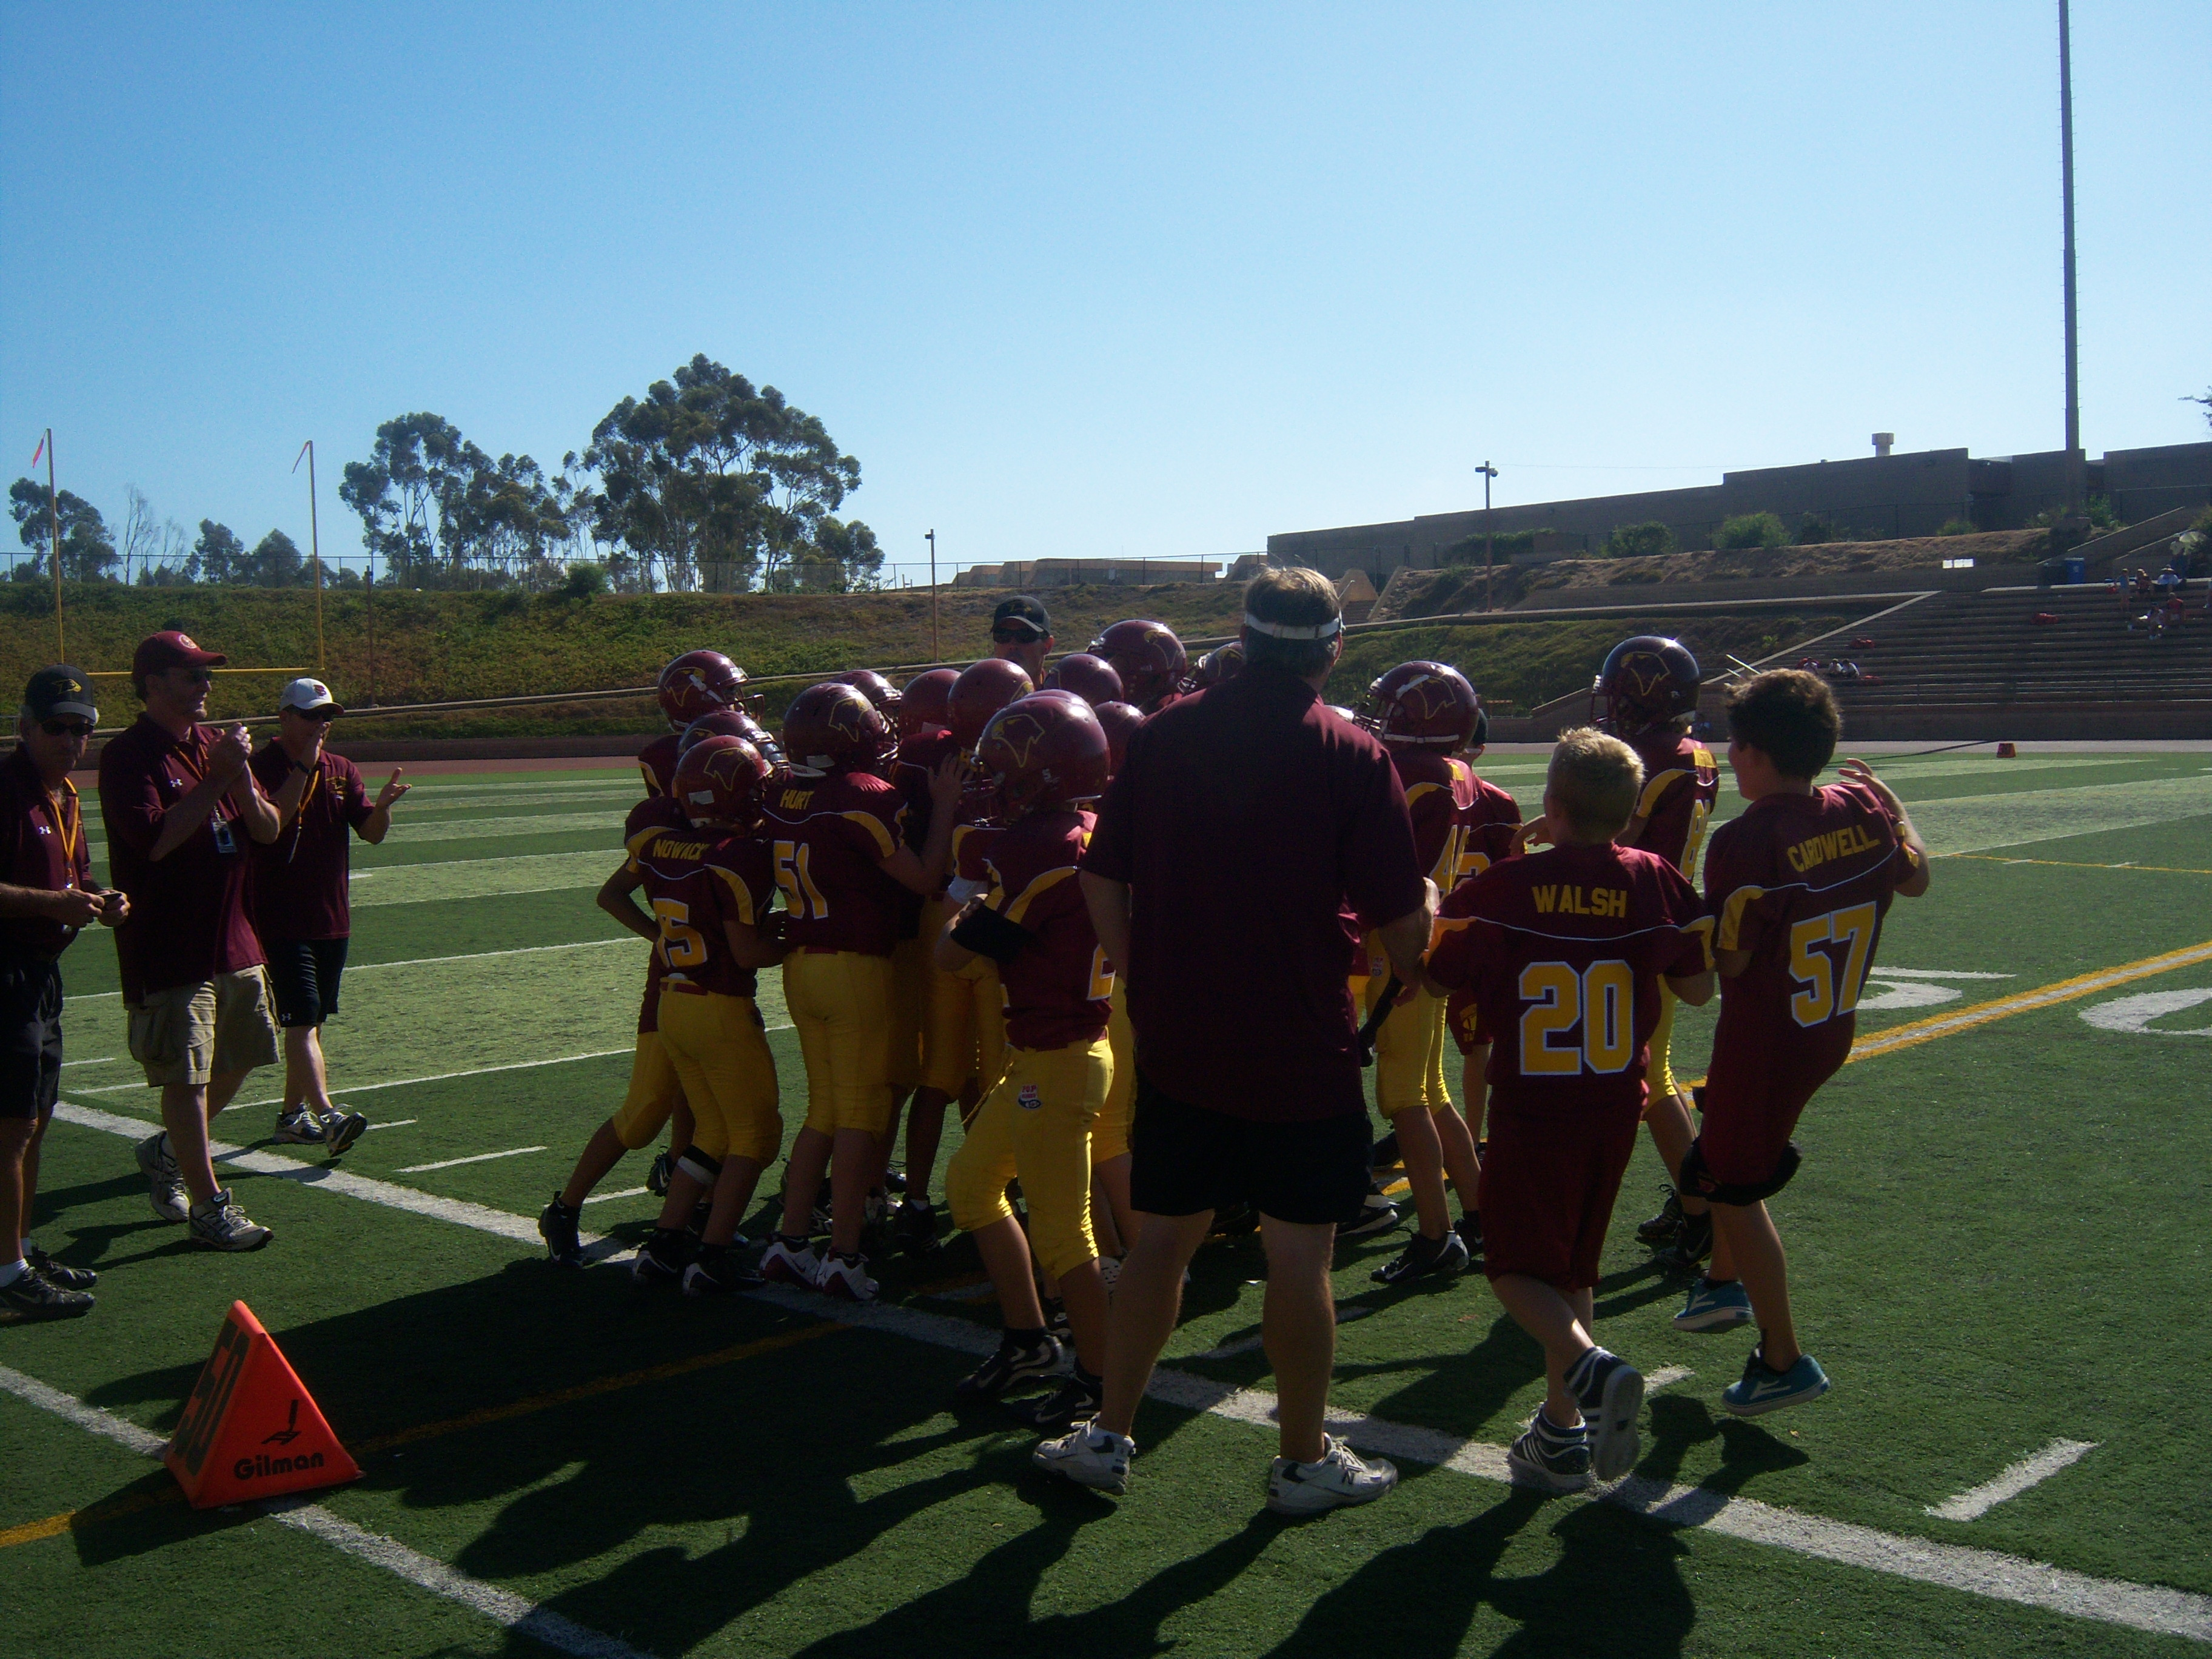 Coach fires them up!